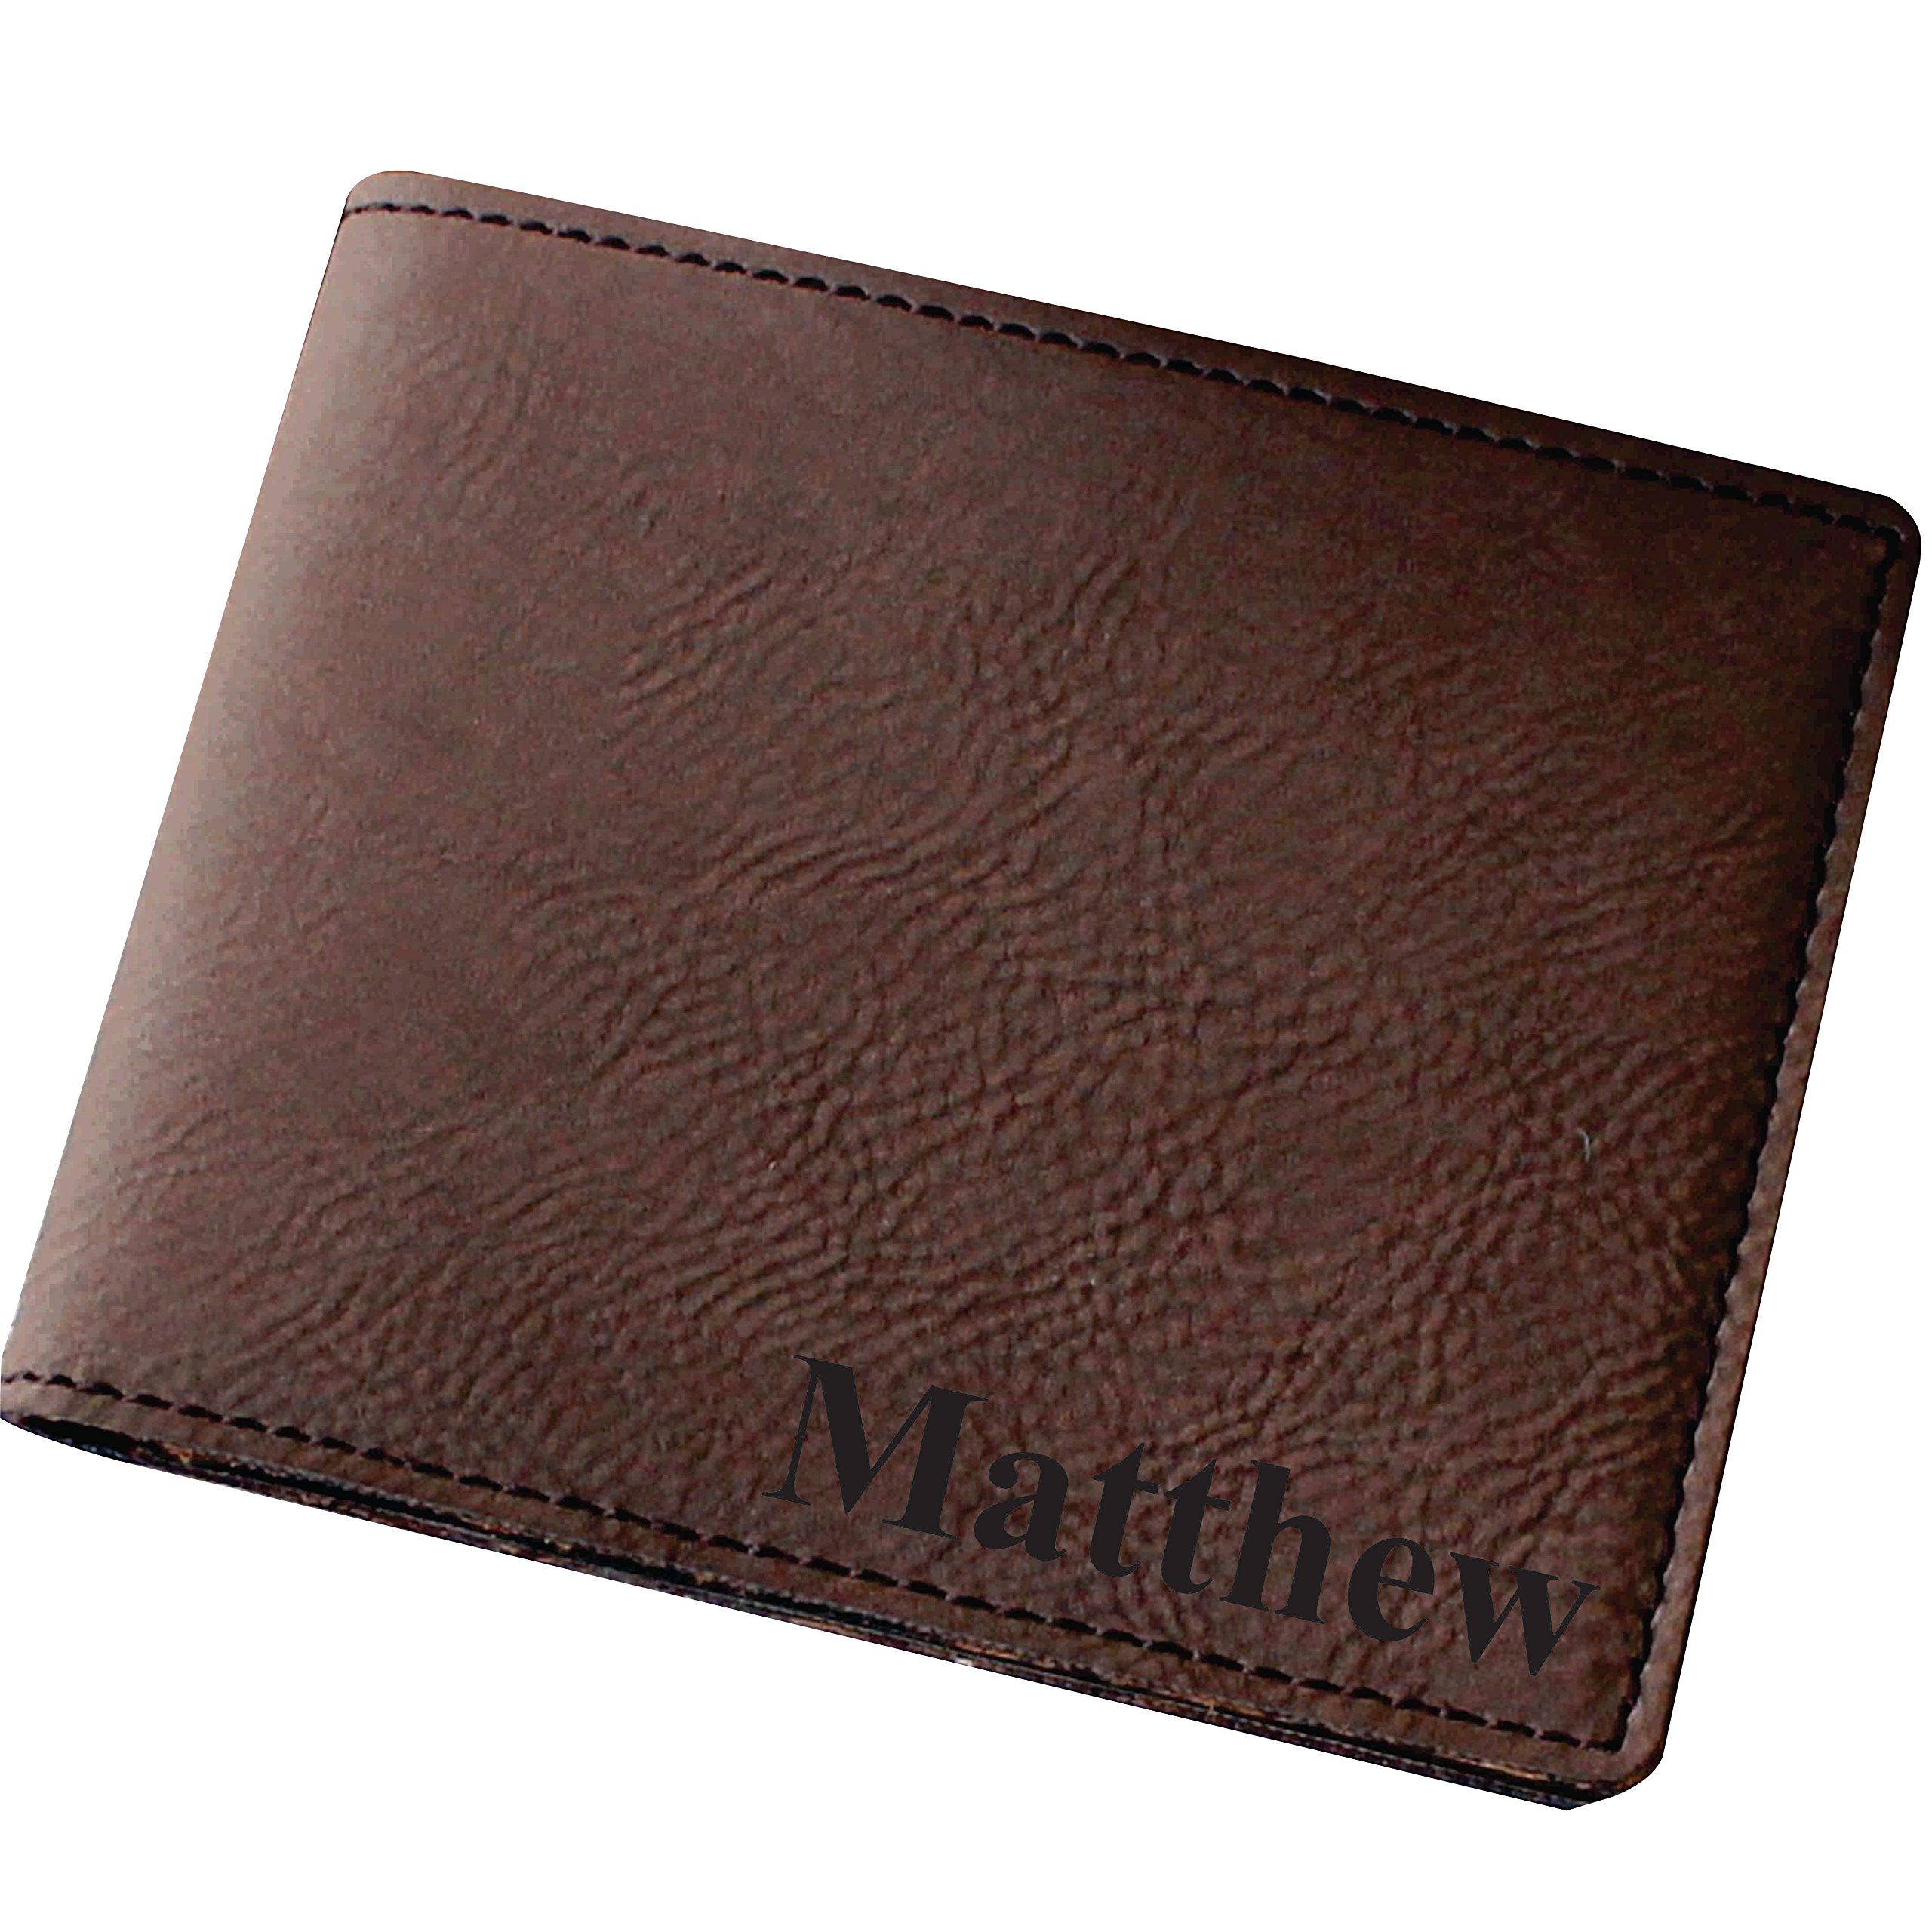 Customized Brown Leather Bi-Fold Men's Leather Wallet - Personalized Engraved Monogrammed Wedding Groomsman Fathers Day Gift